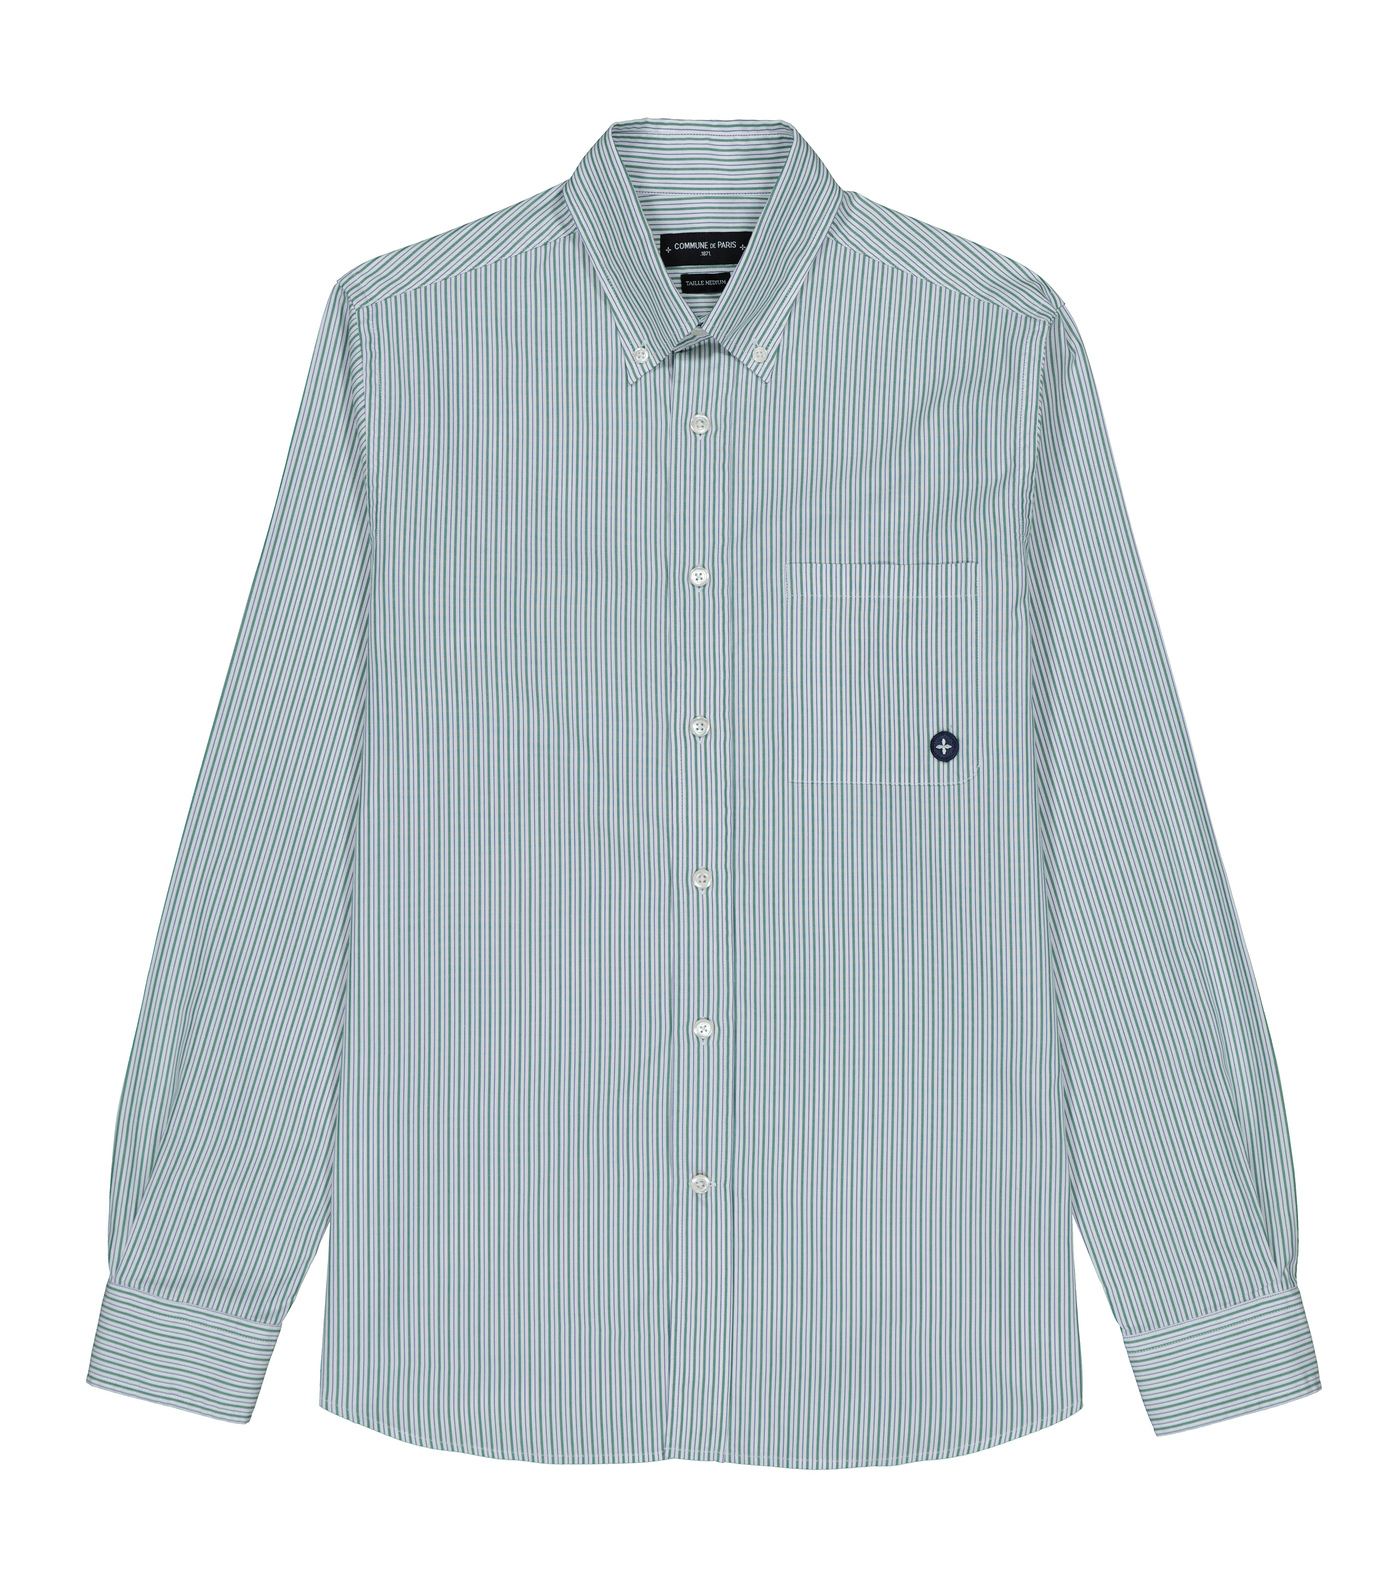 SHIRT EUDES-B - Green stripes